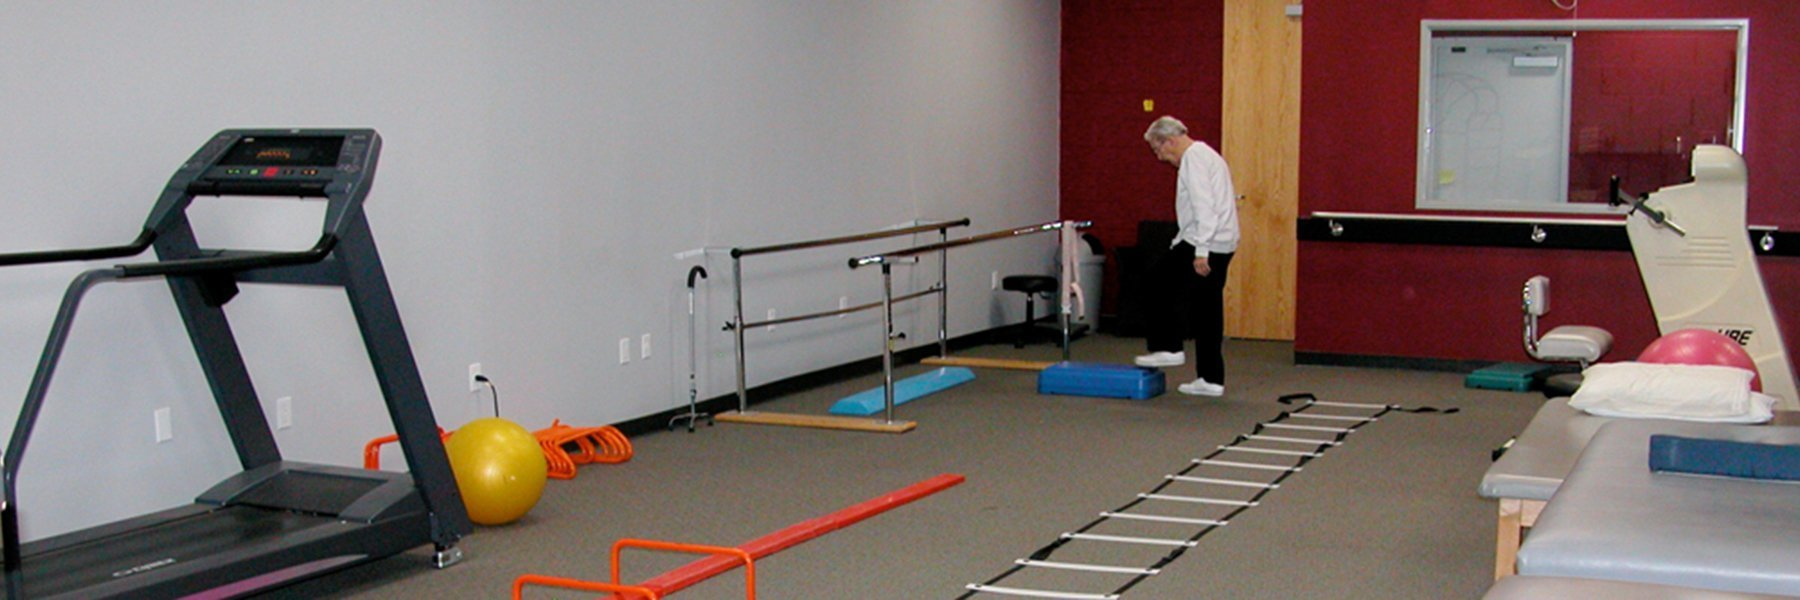 A Physical Therapy Center with non-slip rubber flooring.